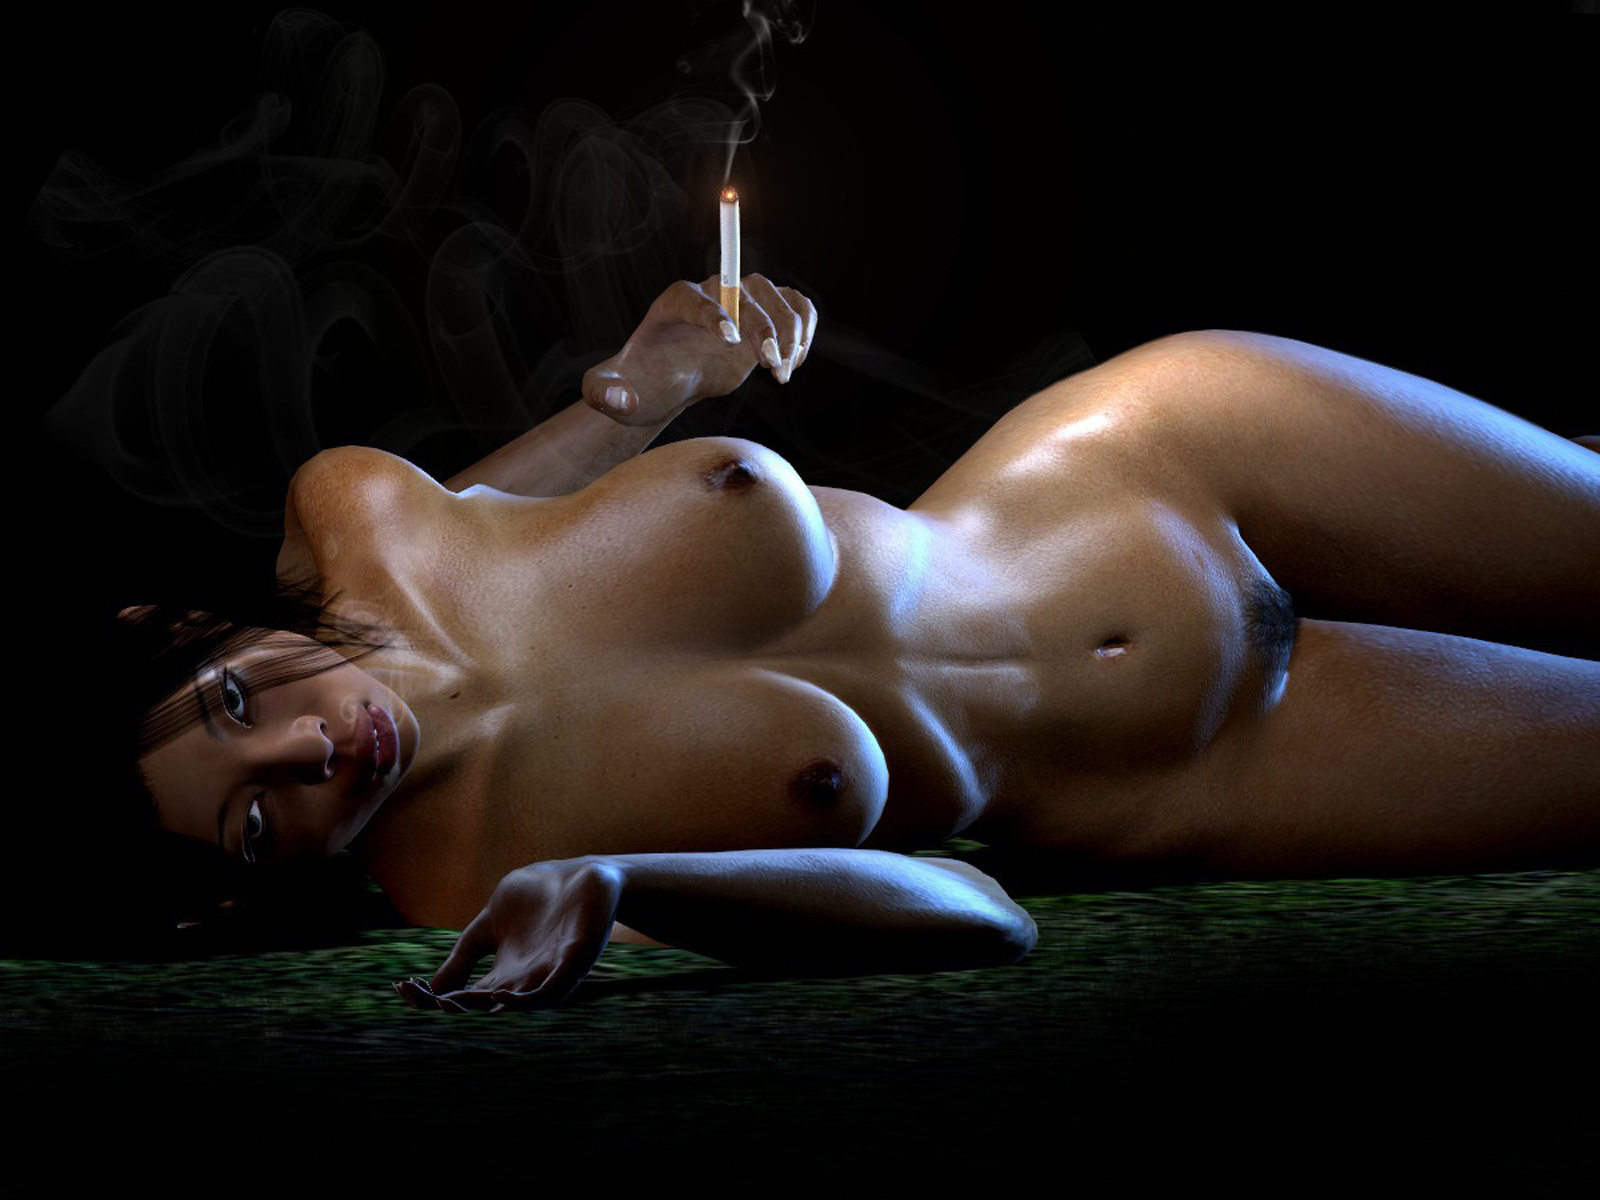 Wallpaper Smoking, Sexy, Naked Desktop Wallpaper - Fantasy -6410